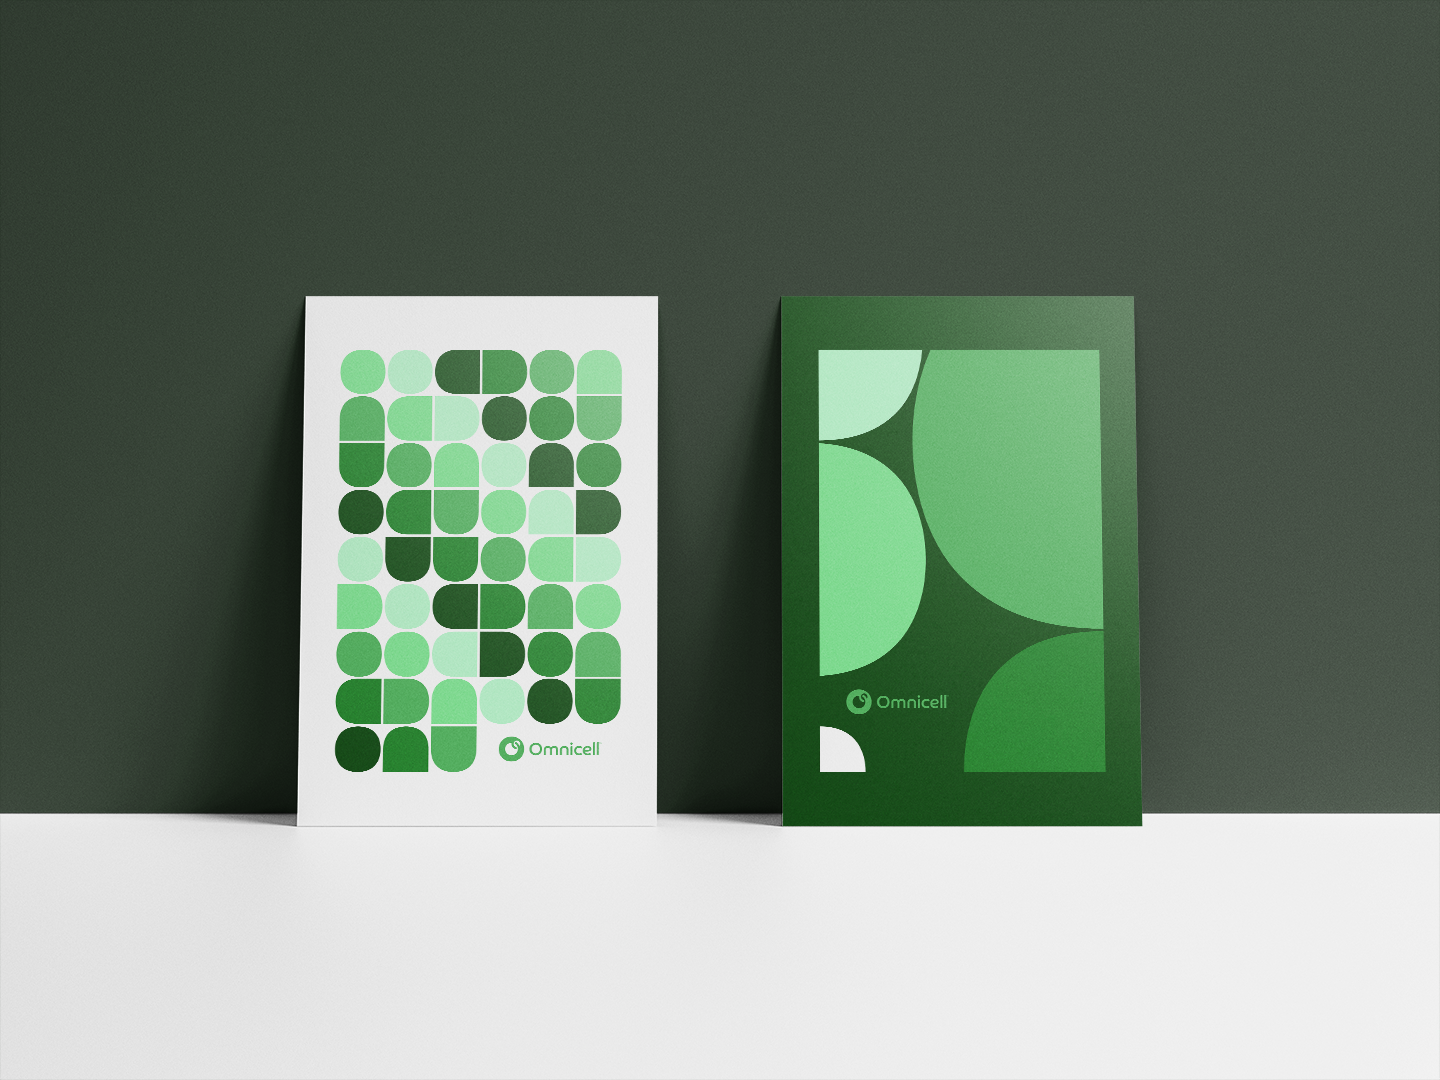 omnicell poster graphics